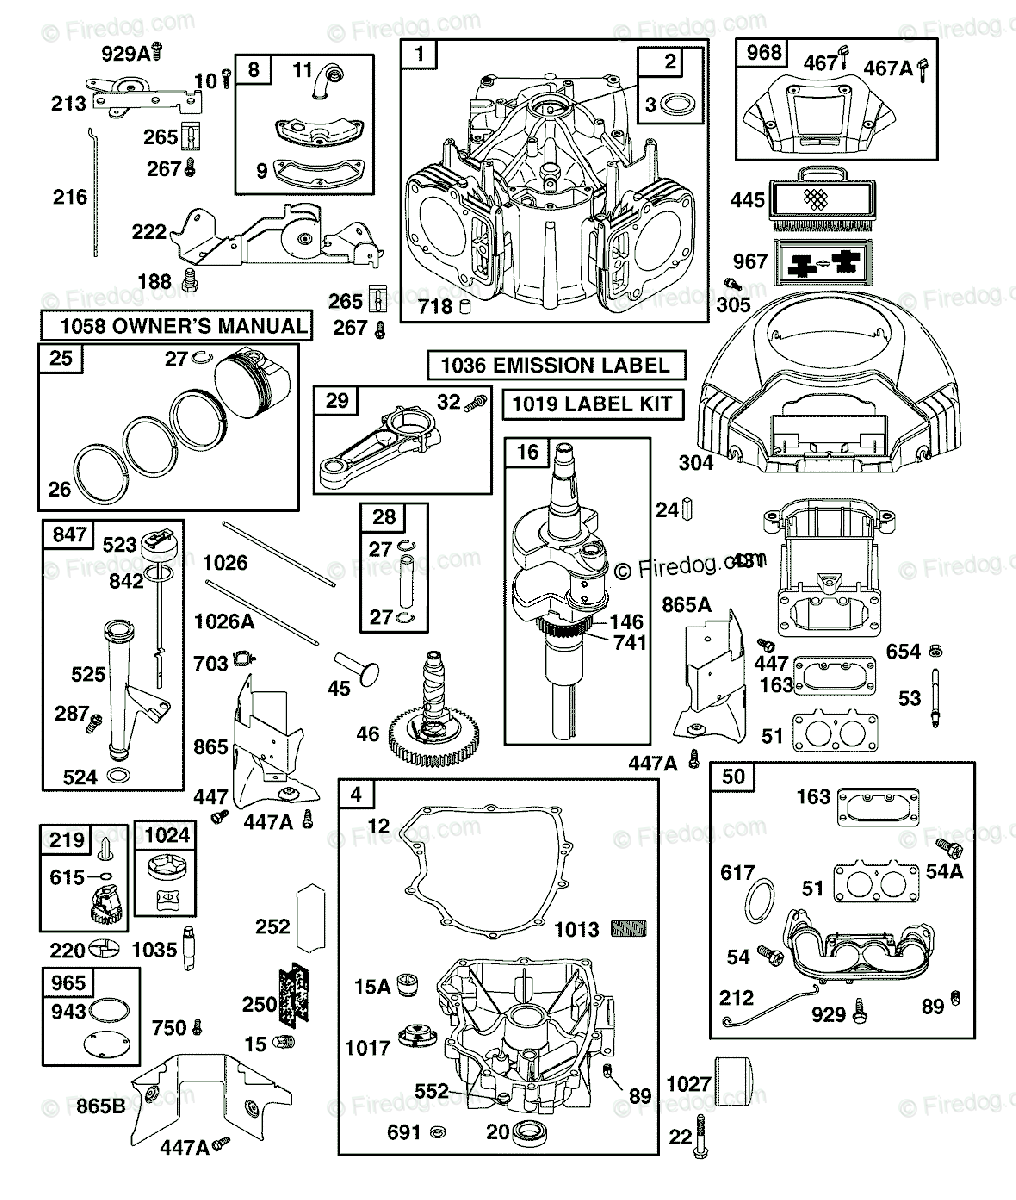 hight resolution of husqvarna ride mower yth 2454 t 917 279220 2006 05 oem parts diagram for briggs engine part 1 firedog com